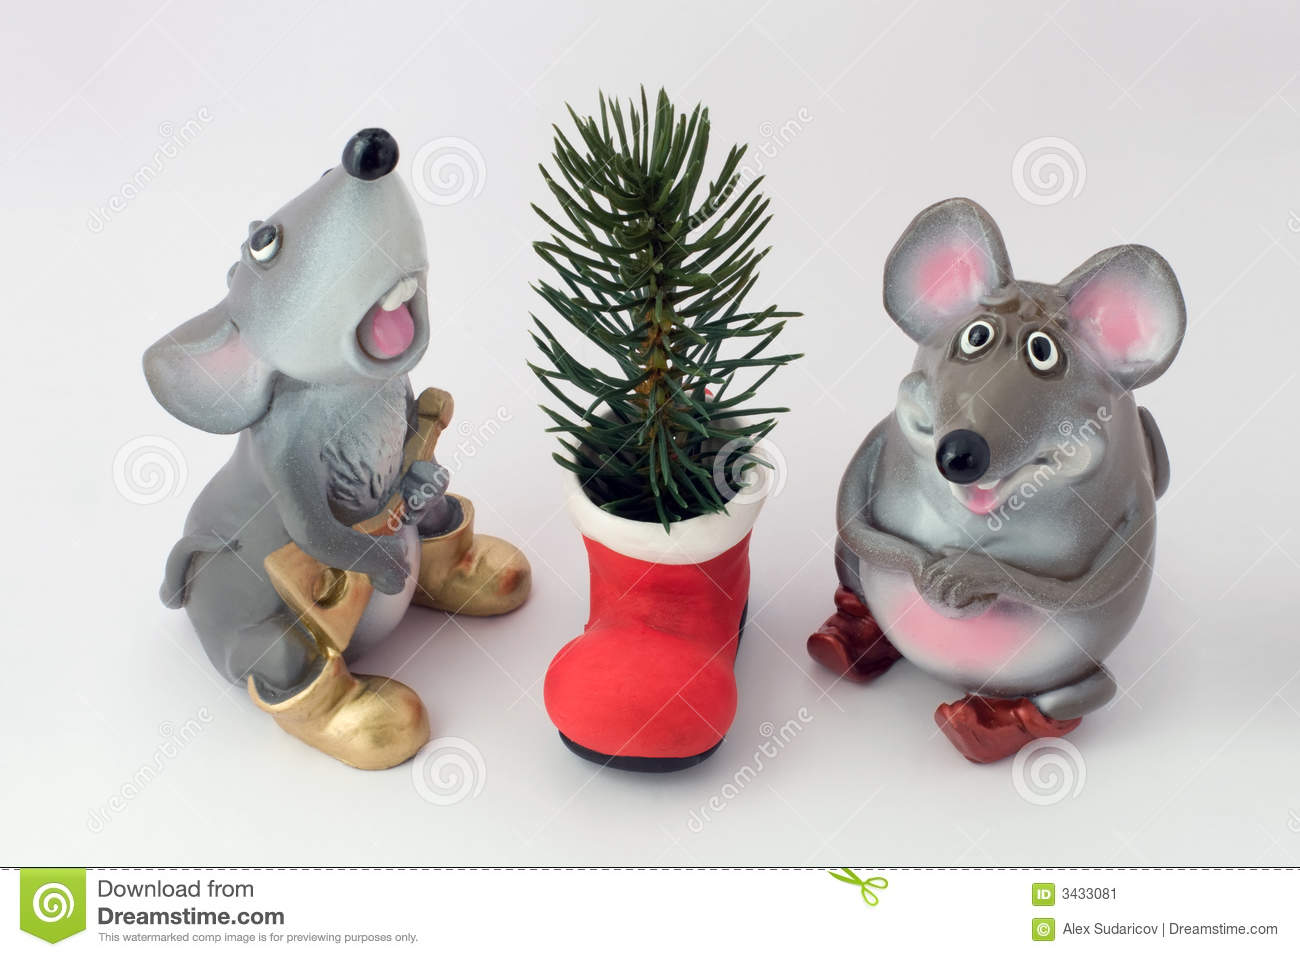 Mousy and a fir-tree